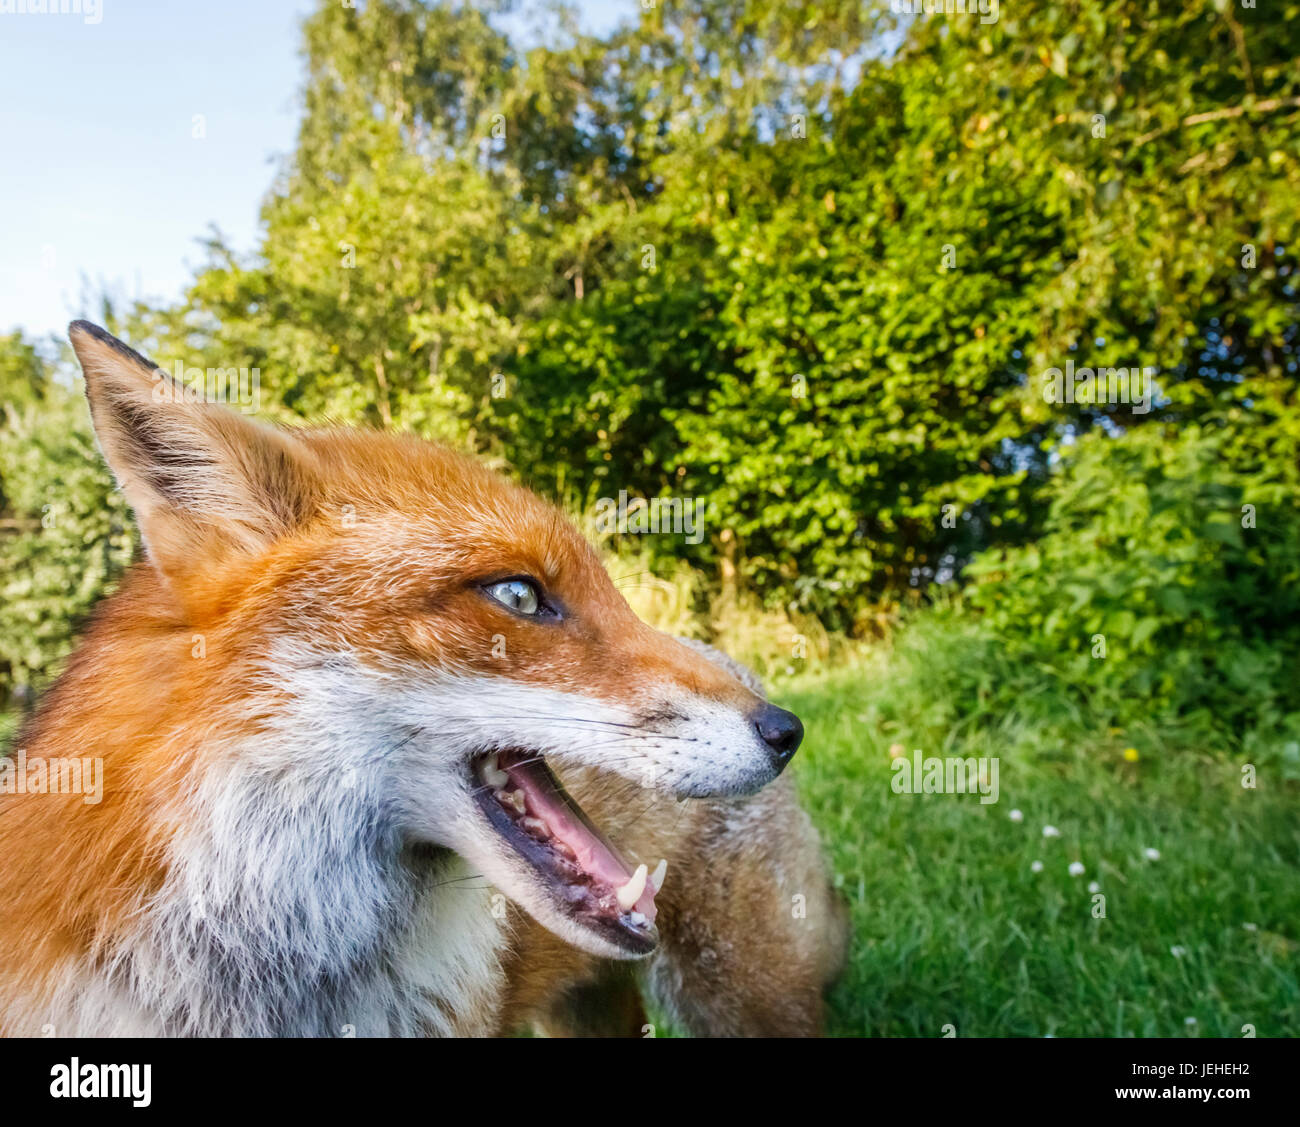 British wildlife: el zorro (Vulpes vulpes), British Wildlife Center Newchapel, Lingfield, Surrey, Reino Unido Imagen De Stock